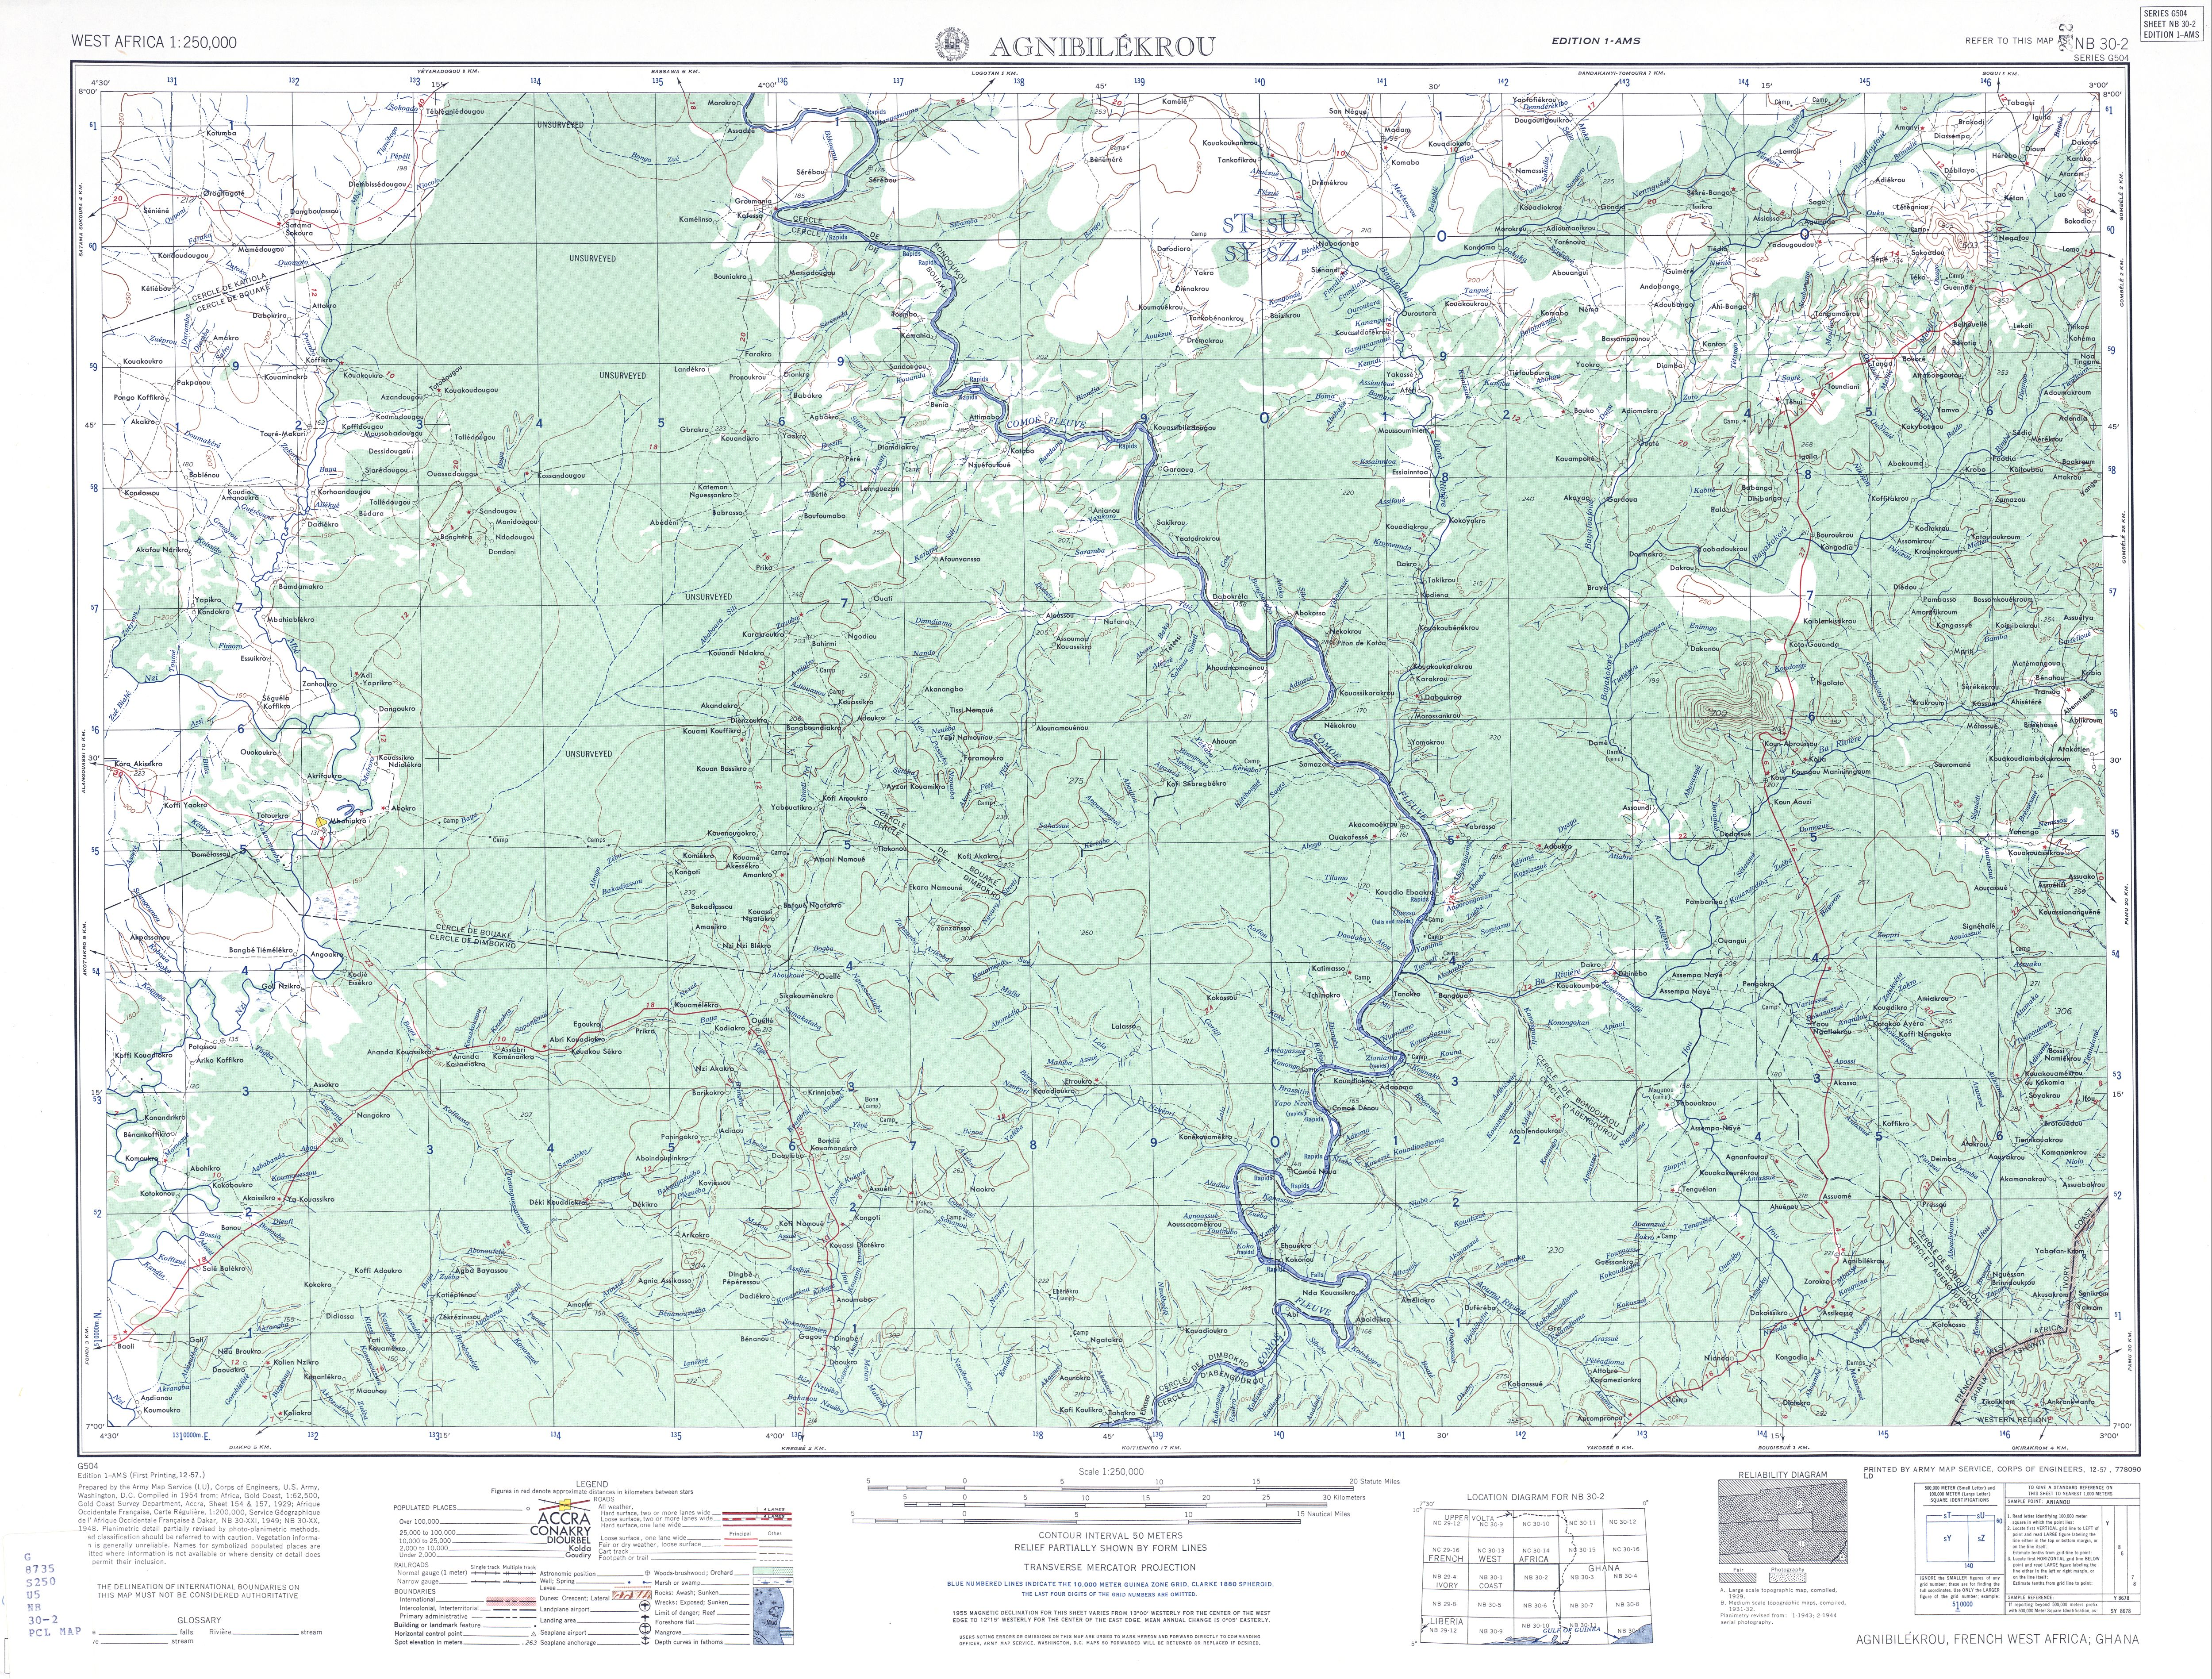 Agnibilekrou Topographic Map Sheet, Western Africa 1955